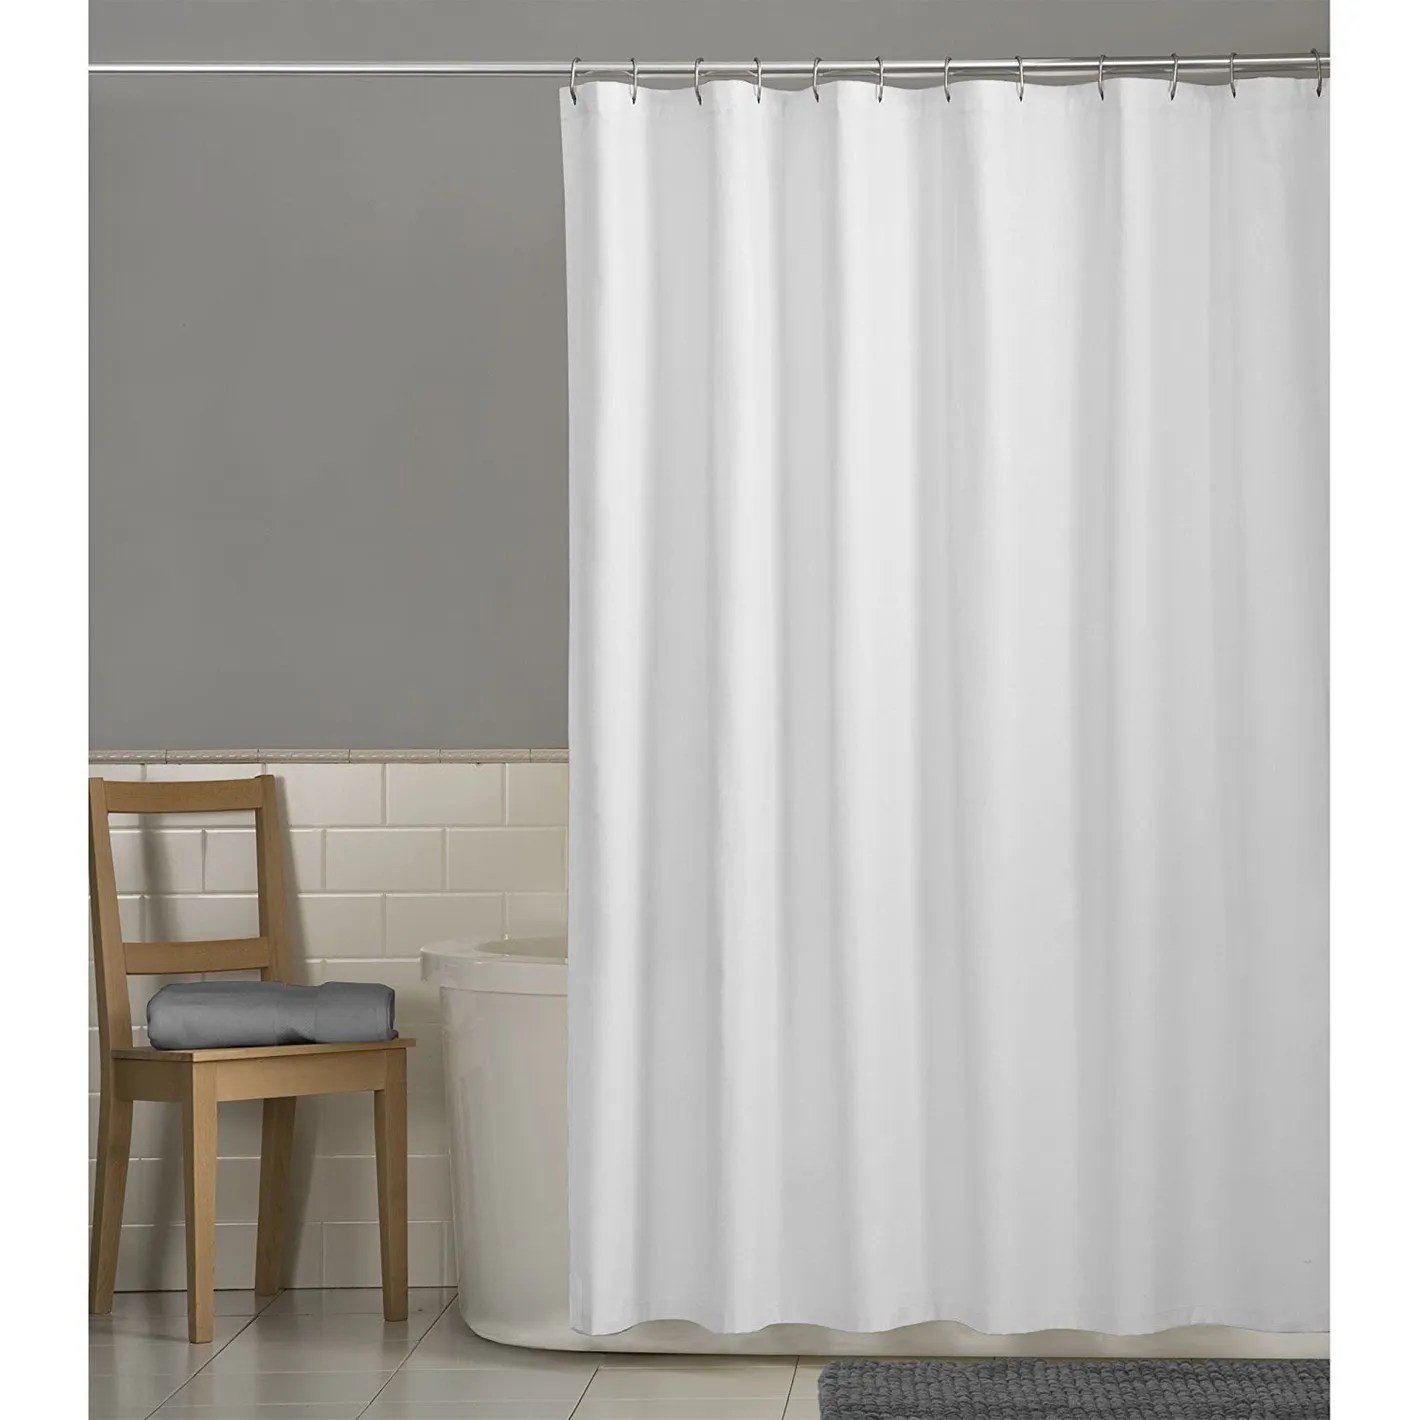 Shower Curtains For Less Maytex Water Repellent Fabric Shower Curtain